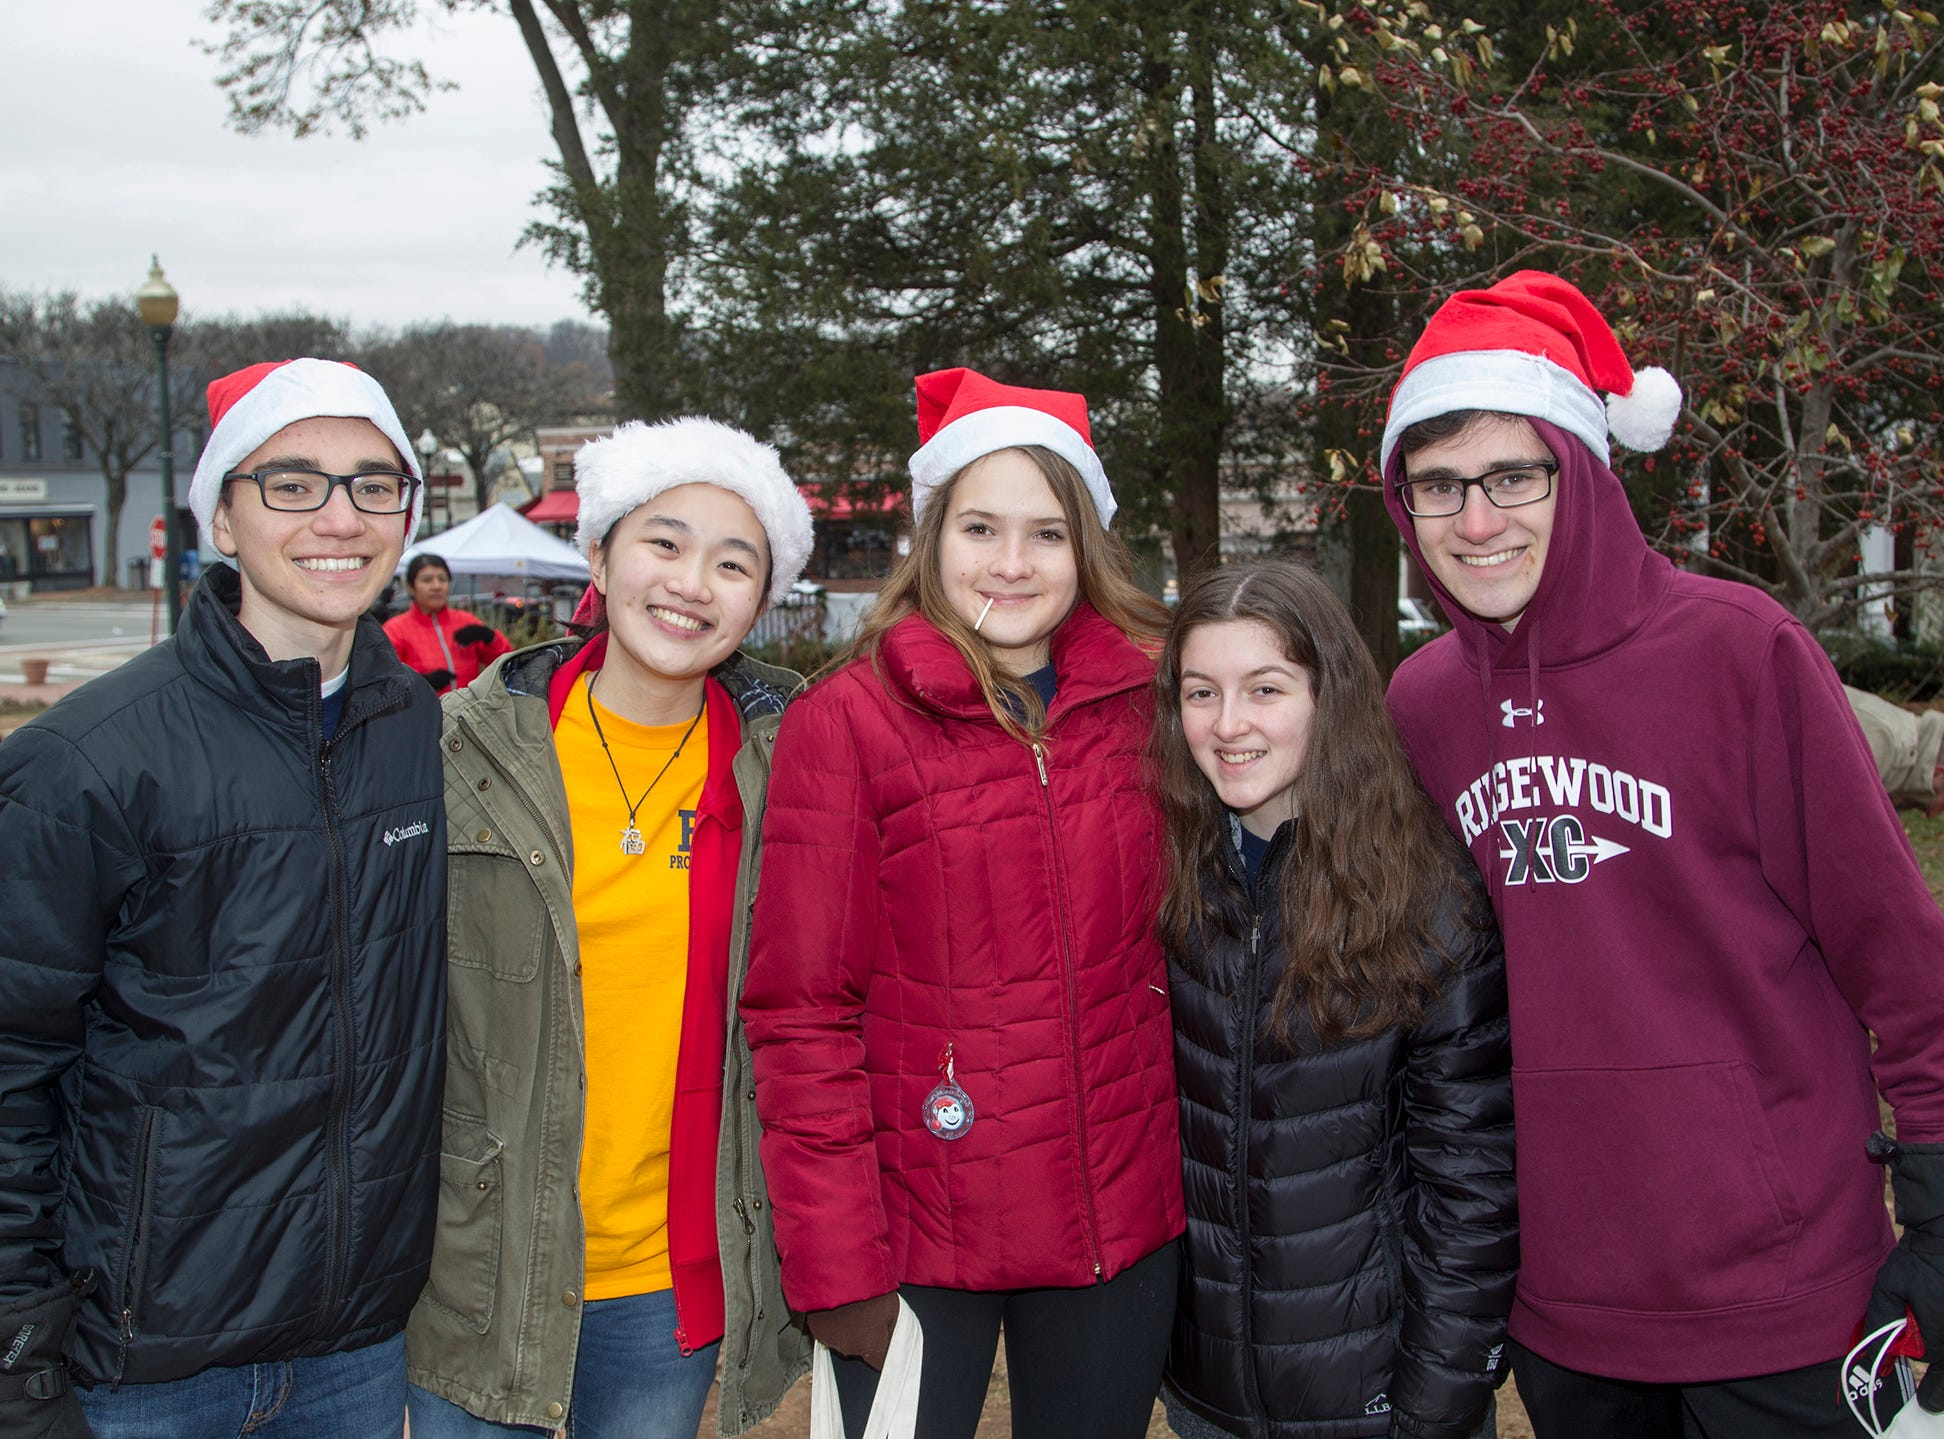 Logan, Vanessa, Katrina, Sofia, Luca. The Ridgewood Guild sponsors Winter Fest at Van Neste Park in Ridgewood. 11/24/2018